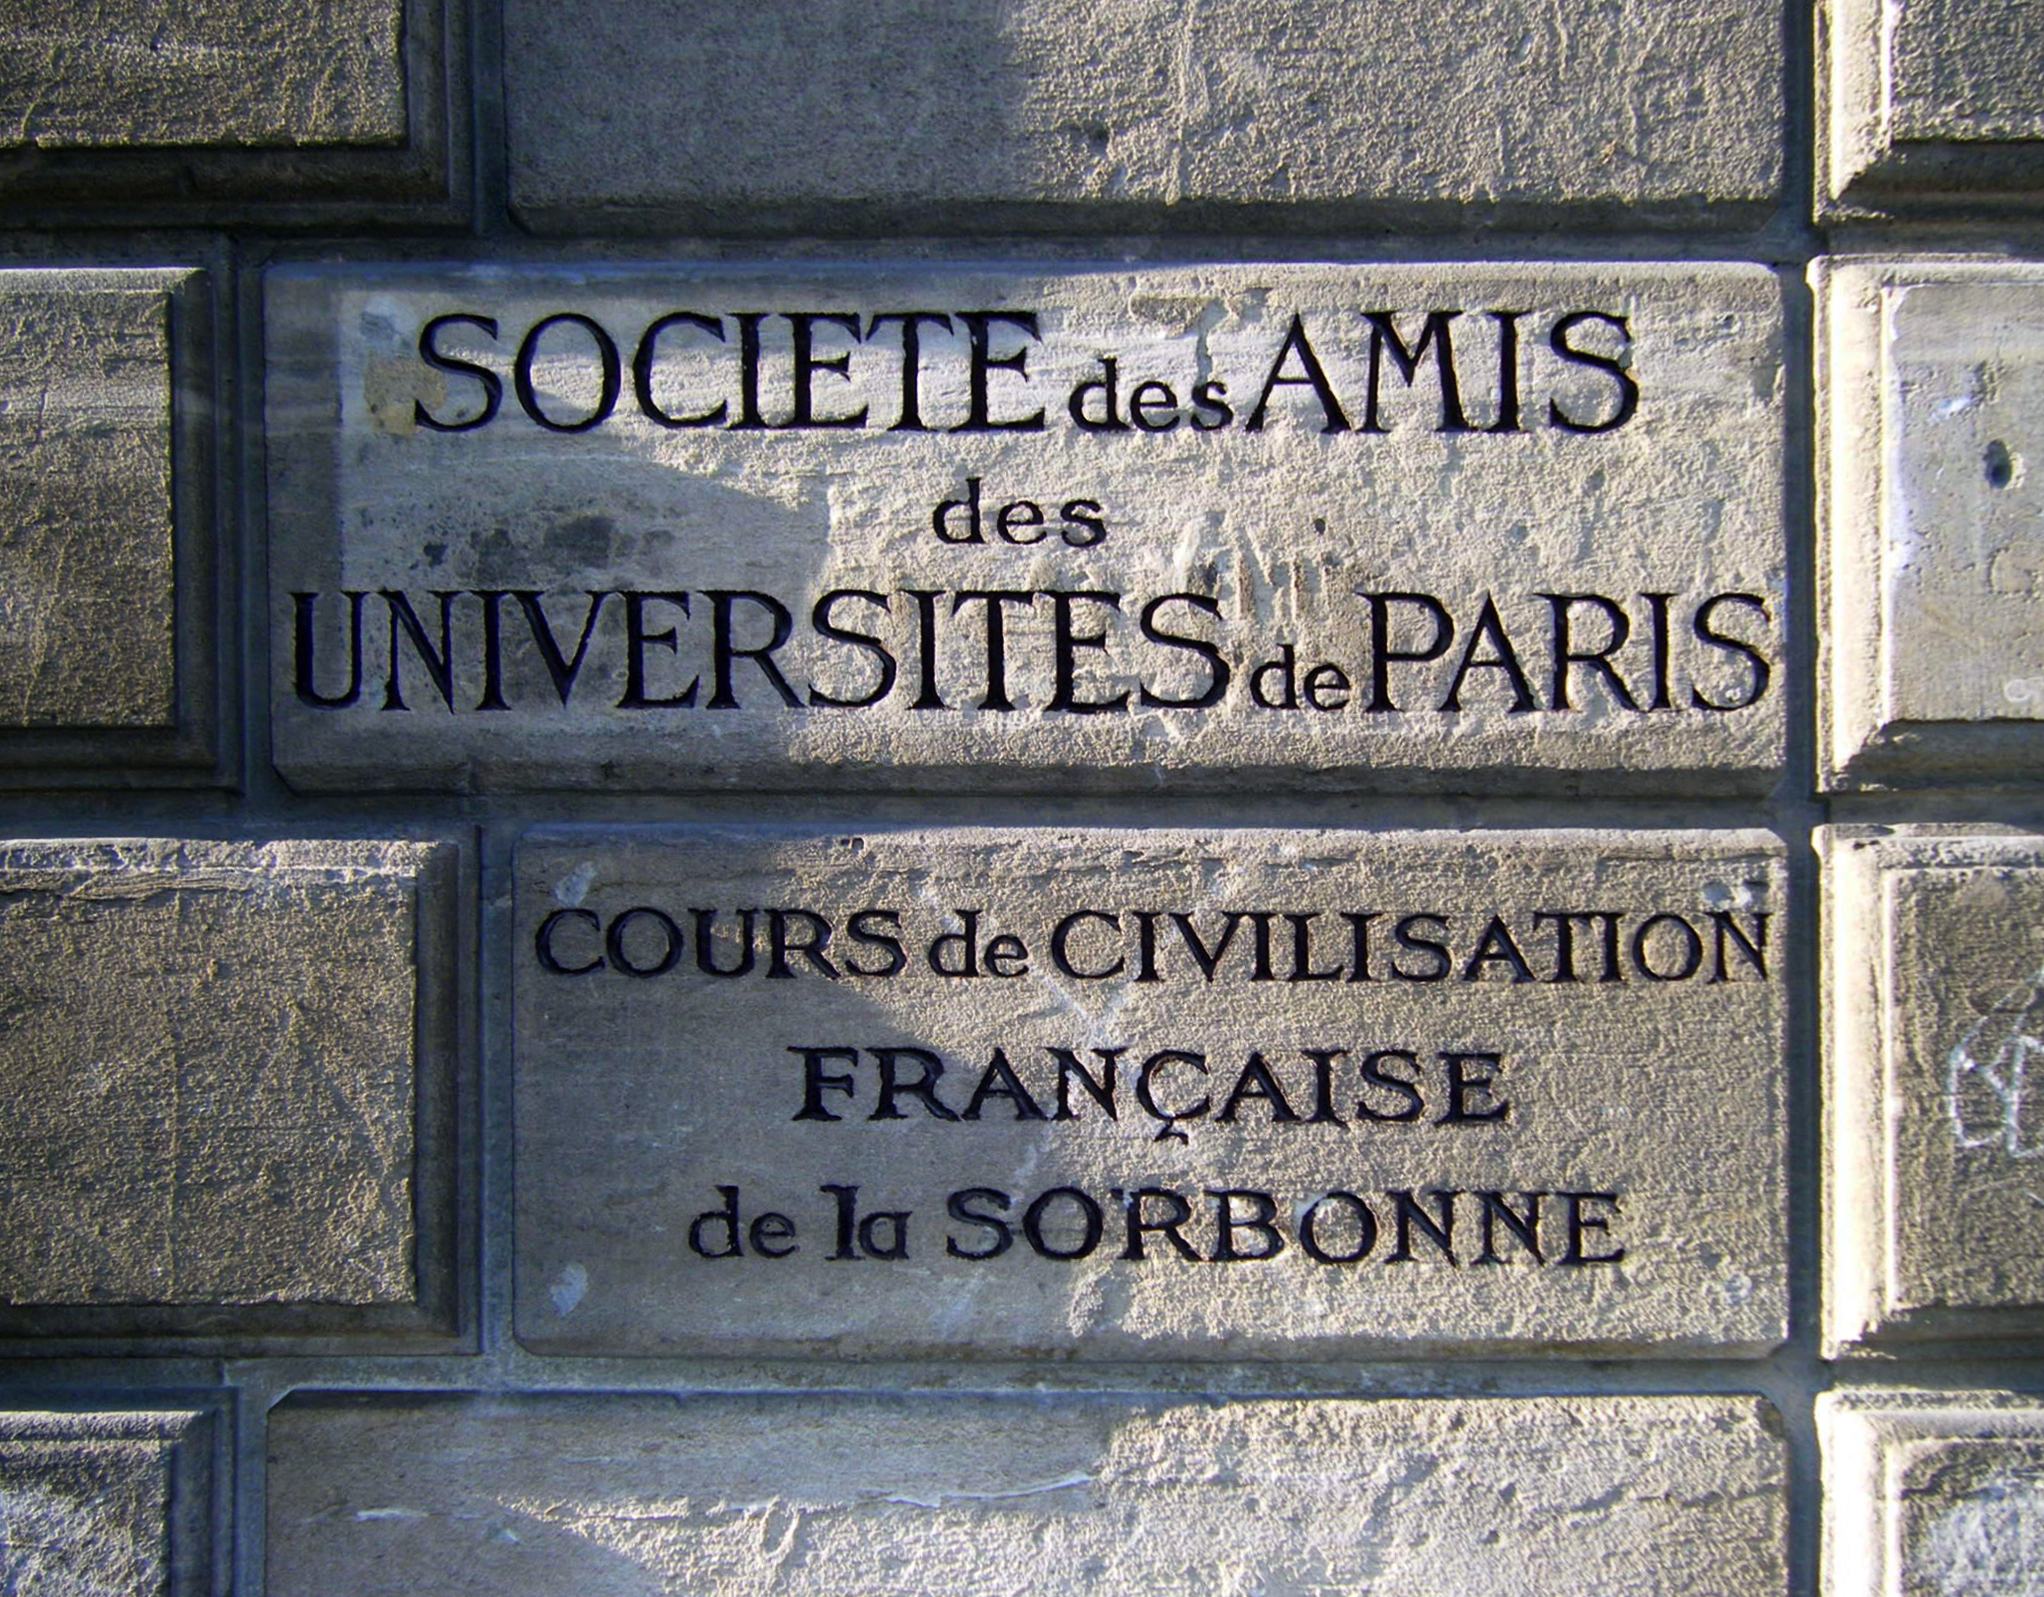 https://upload.wikimedia.org/wikipedia/commons/5/5c/Soci%C3%A9t%C3%A9_des_amis_des_universit%C3%A9s_de_Paris_2008.jpg